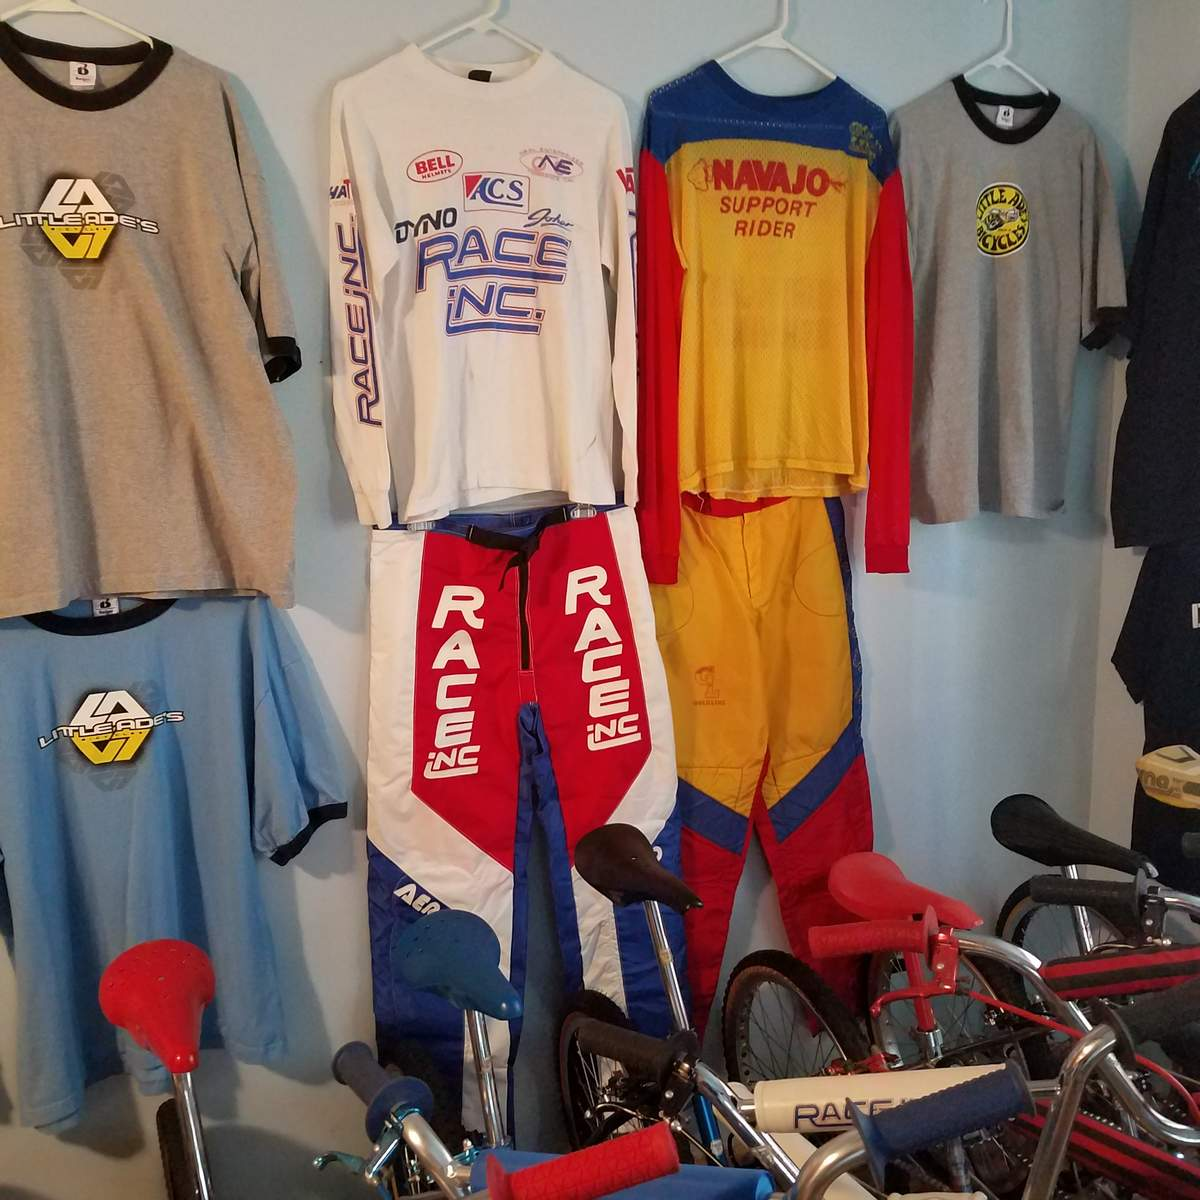 https://s3.amazonaws.com/uploads.bmxmuseum.com/user-images/3408/20200101_1441445e0d058168.jpg